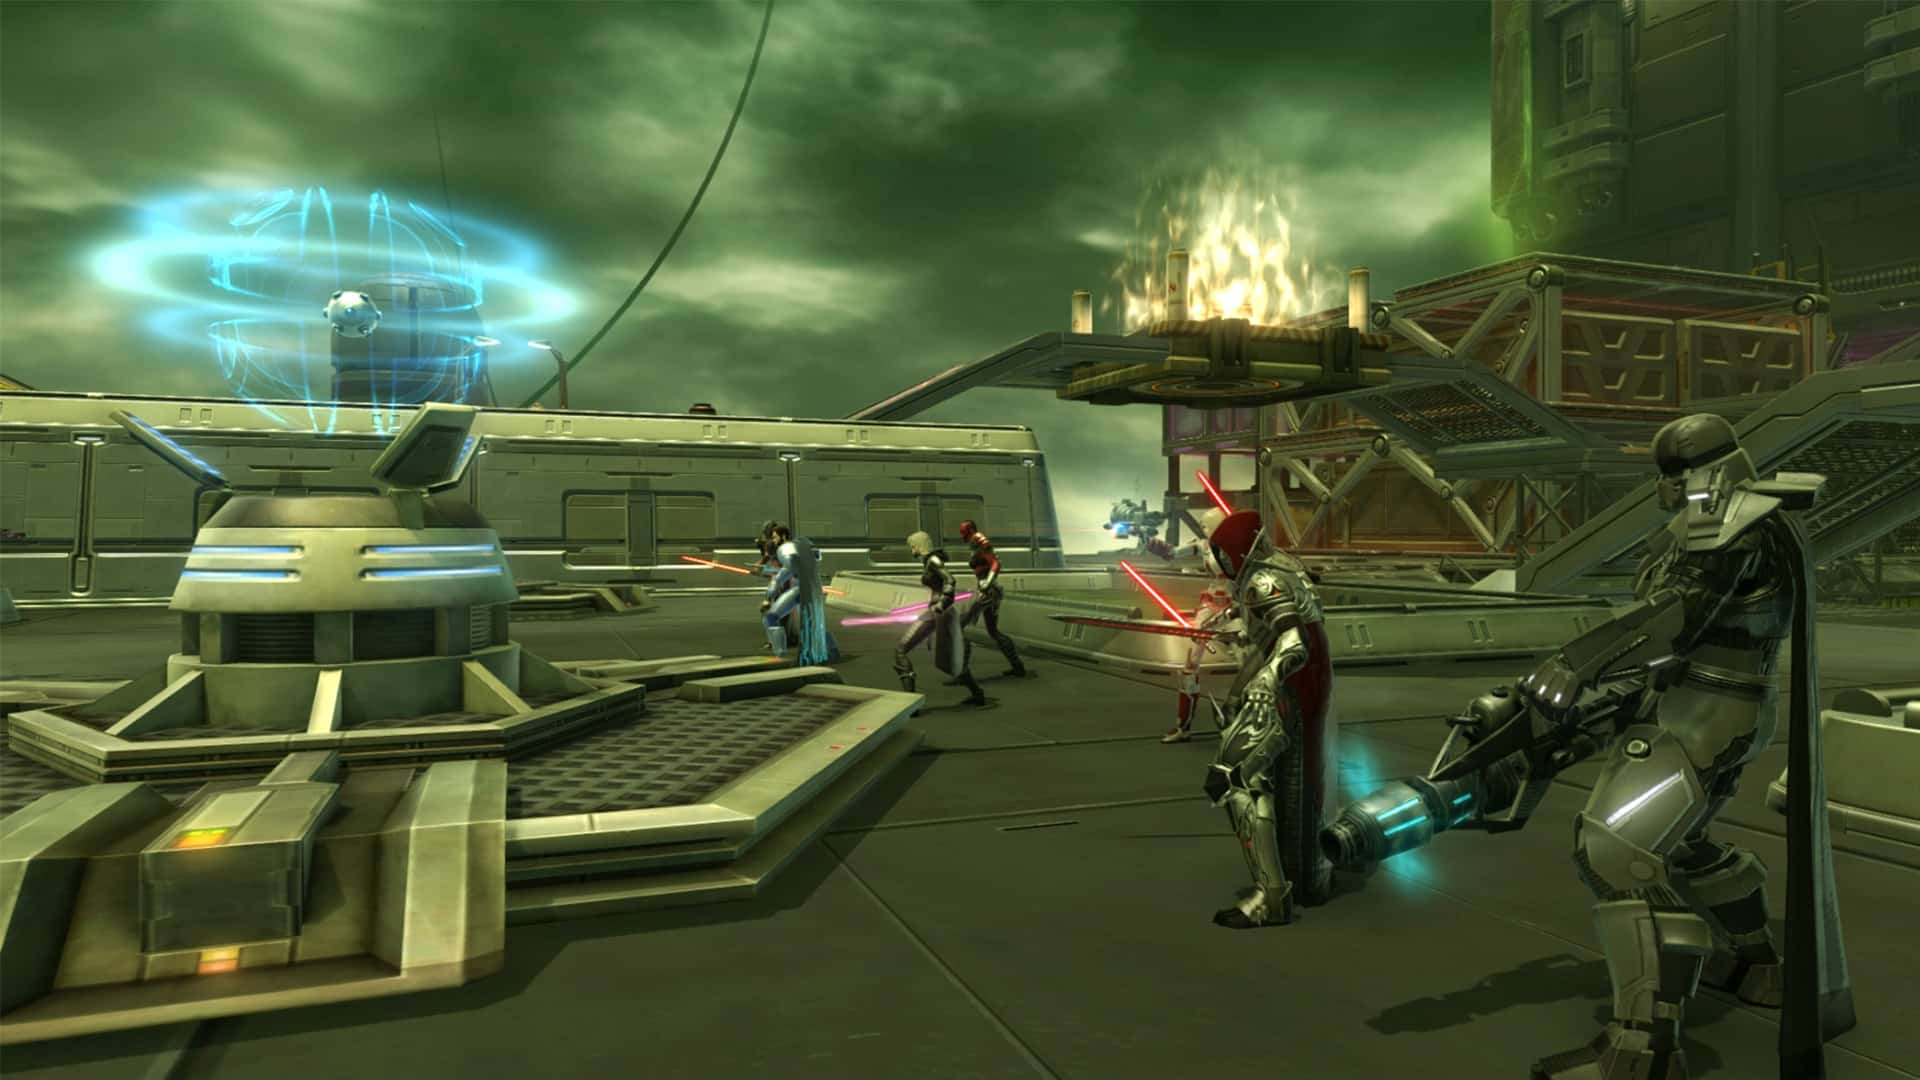 huttball-pvp-star-wars-the-old-republic-s-equiper-dans-l-extension-onslaught-swtor-guide-aide-astuce